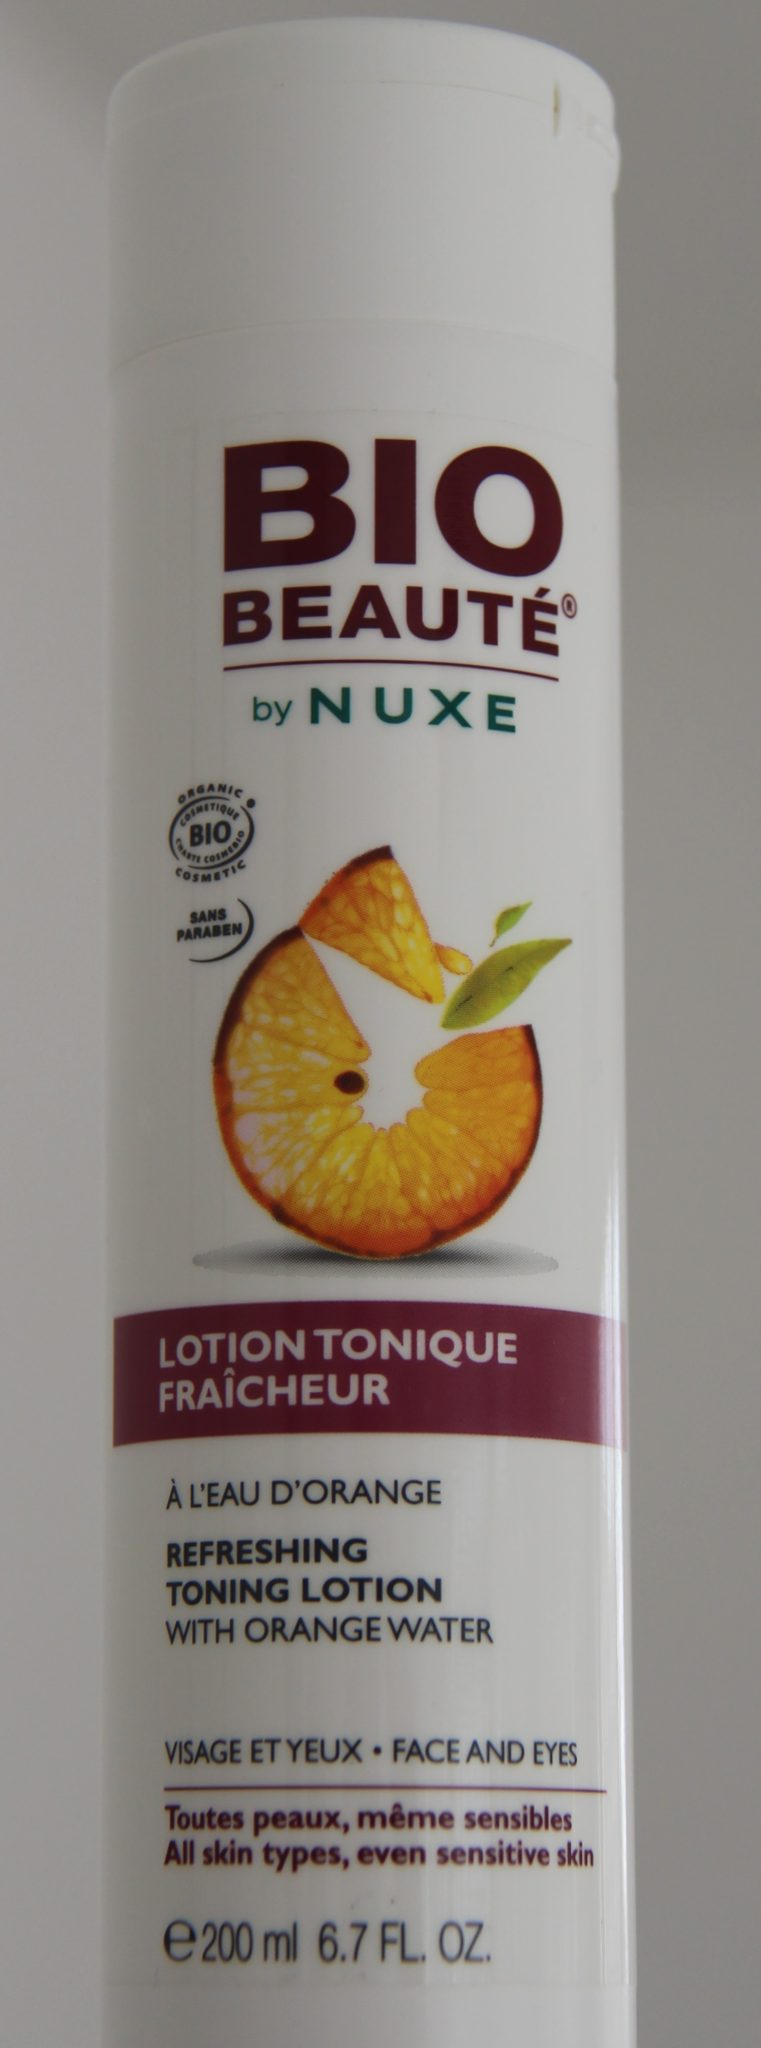 bio beauté by nuxe tonique